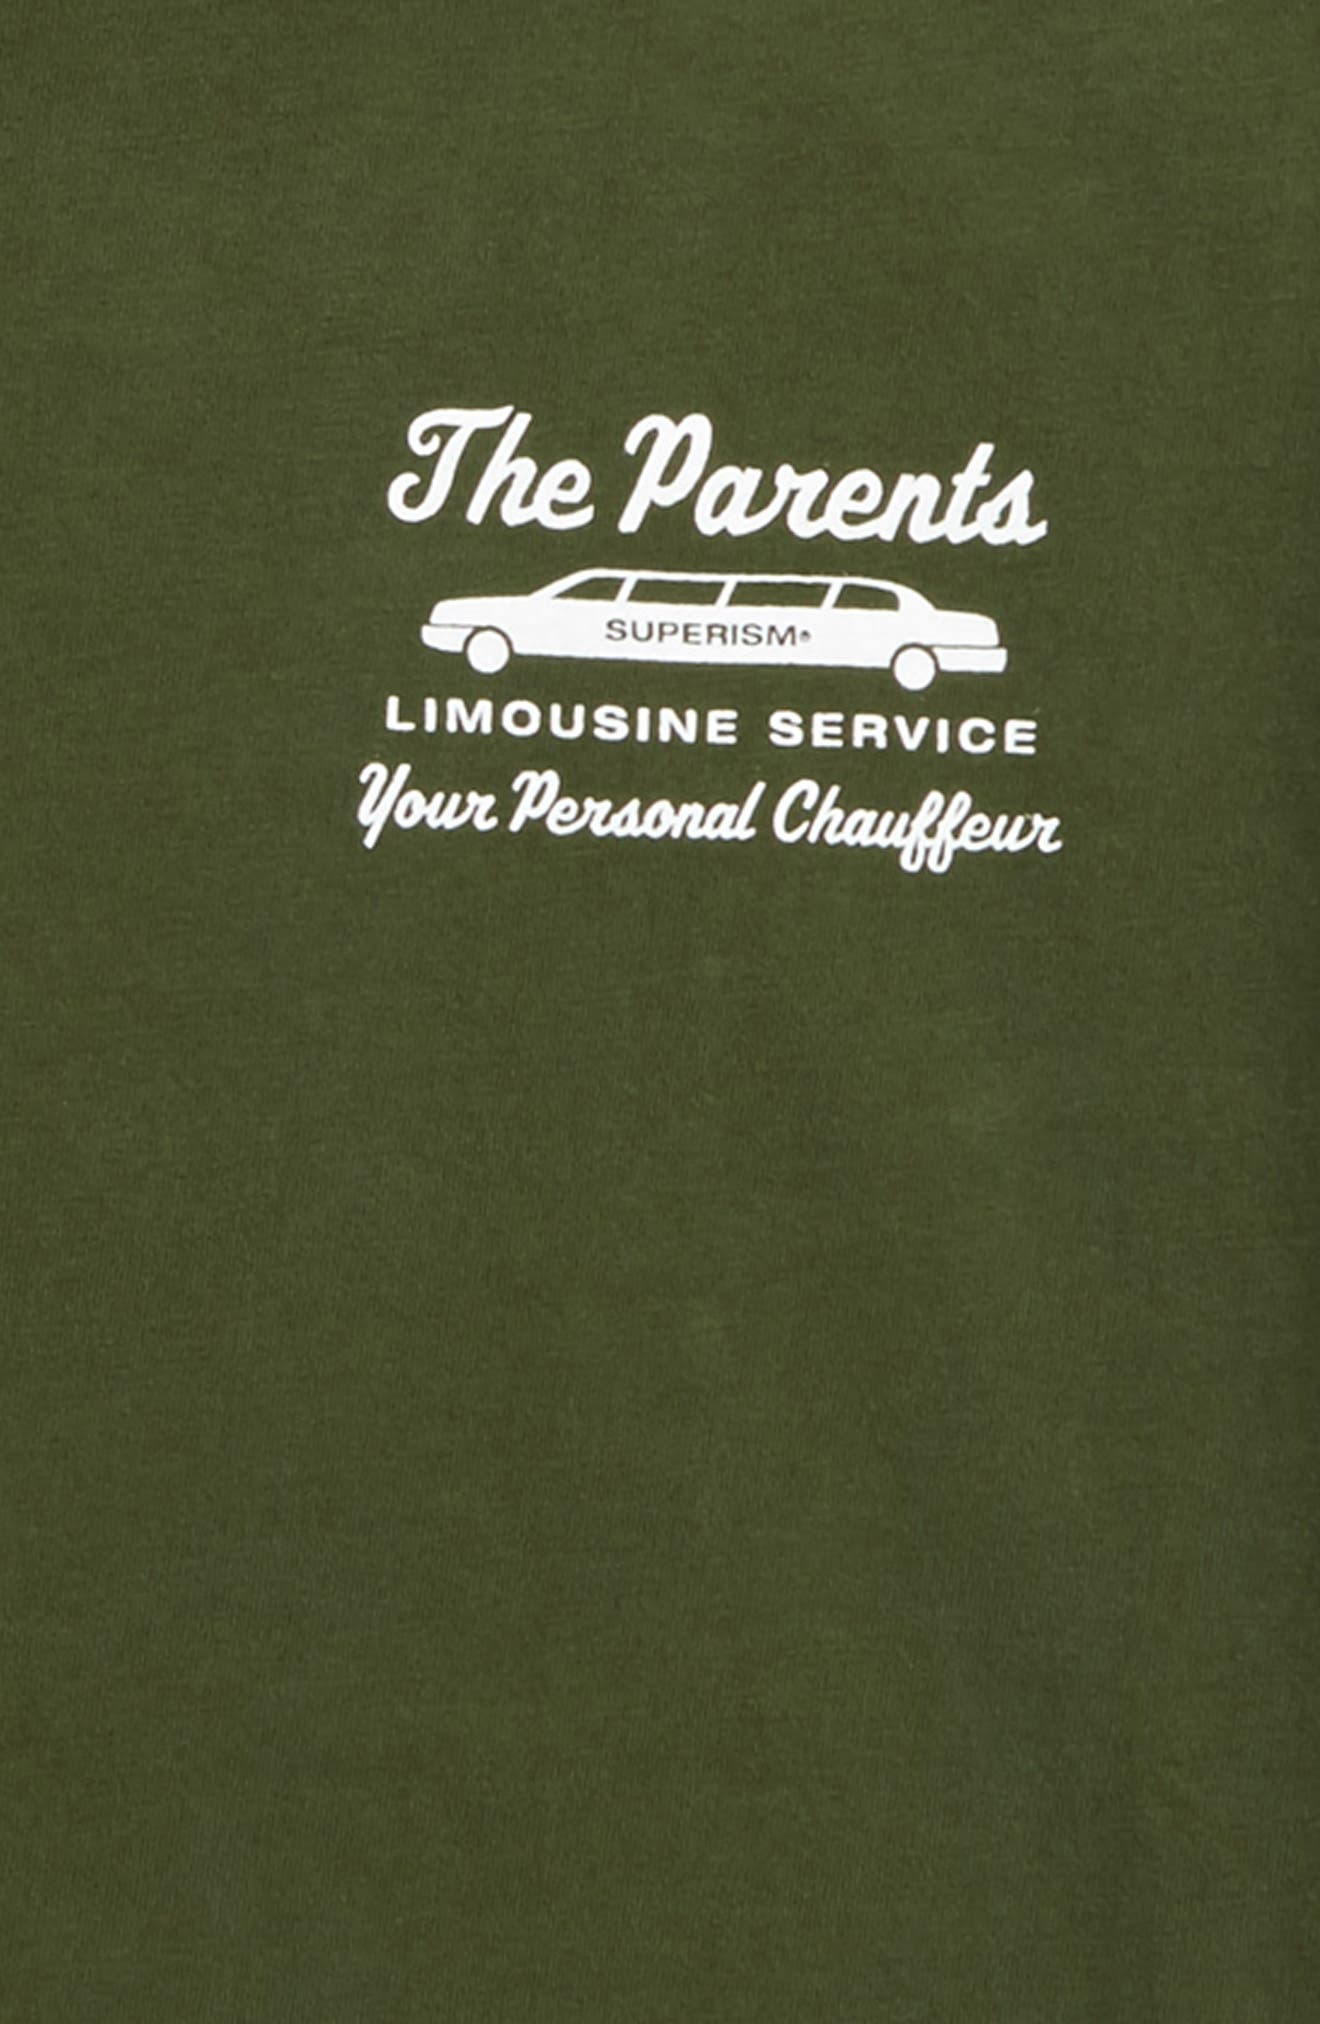 Alternate Image 3  - Superism The Parents Limousine Service T-Shirt (Big Boys)